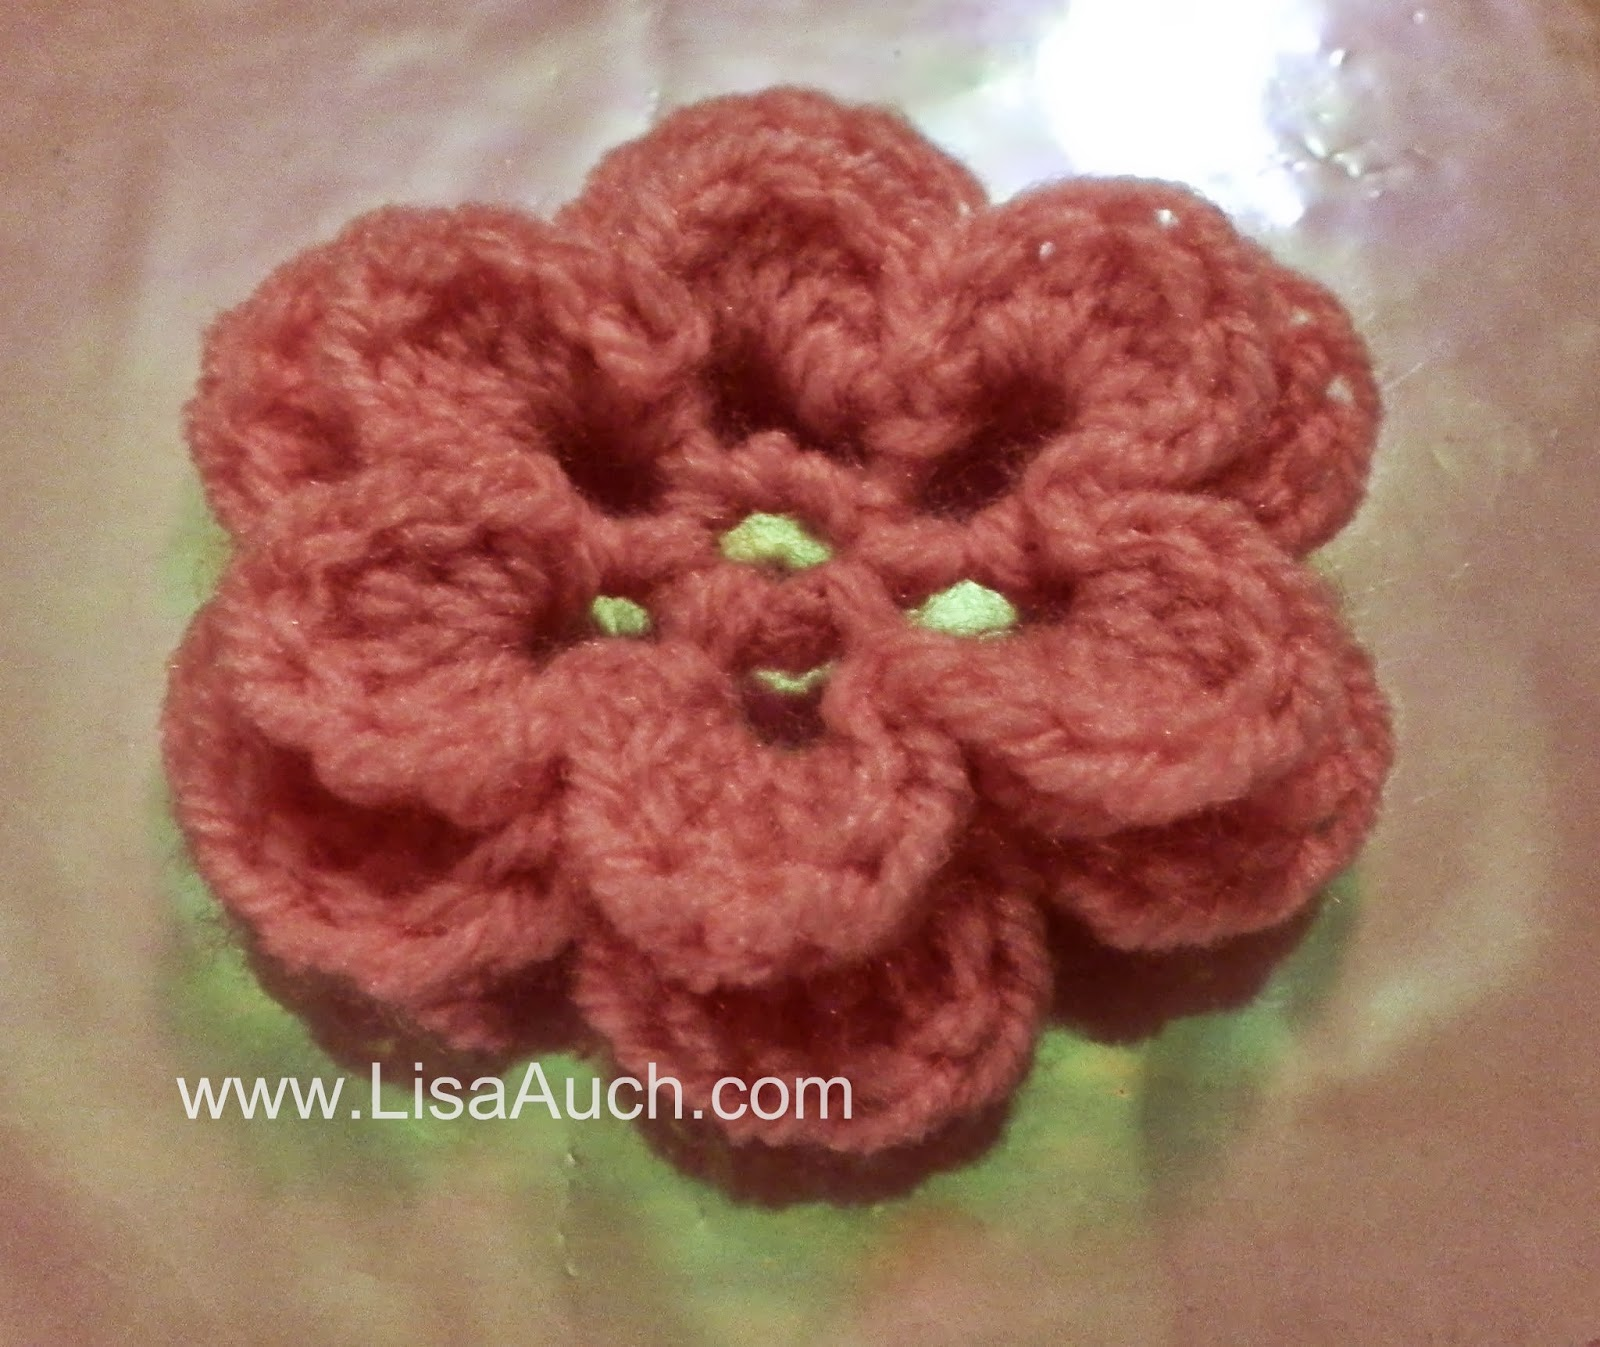 Basic Crochet Flower Patterns Free : Free Crochet Patterns and Designs by LisaAuch: Crochet ...